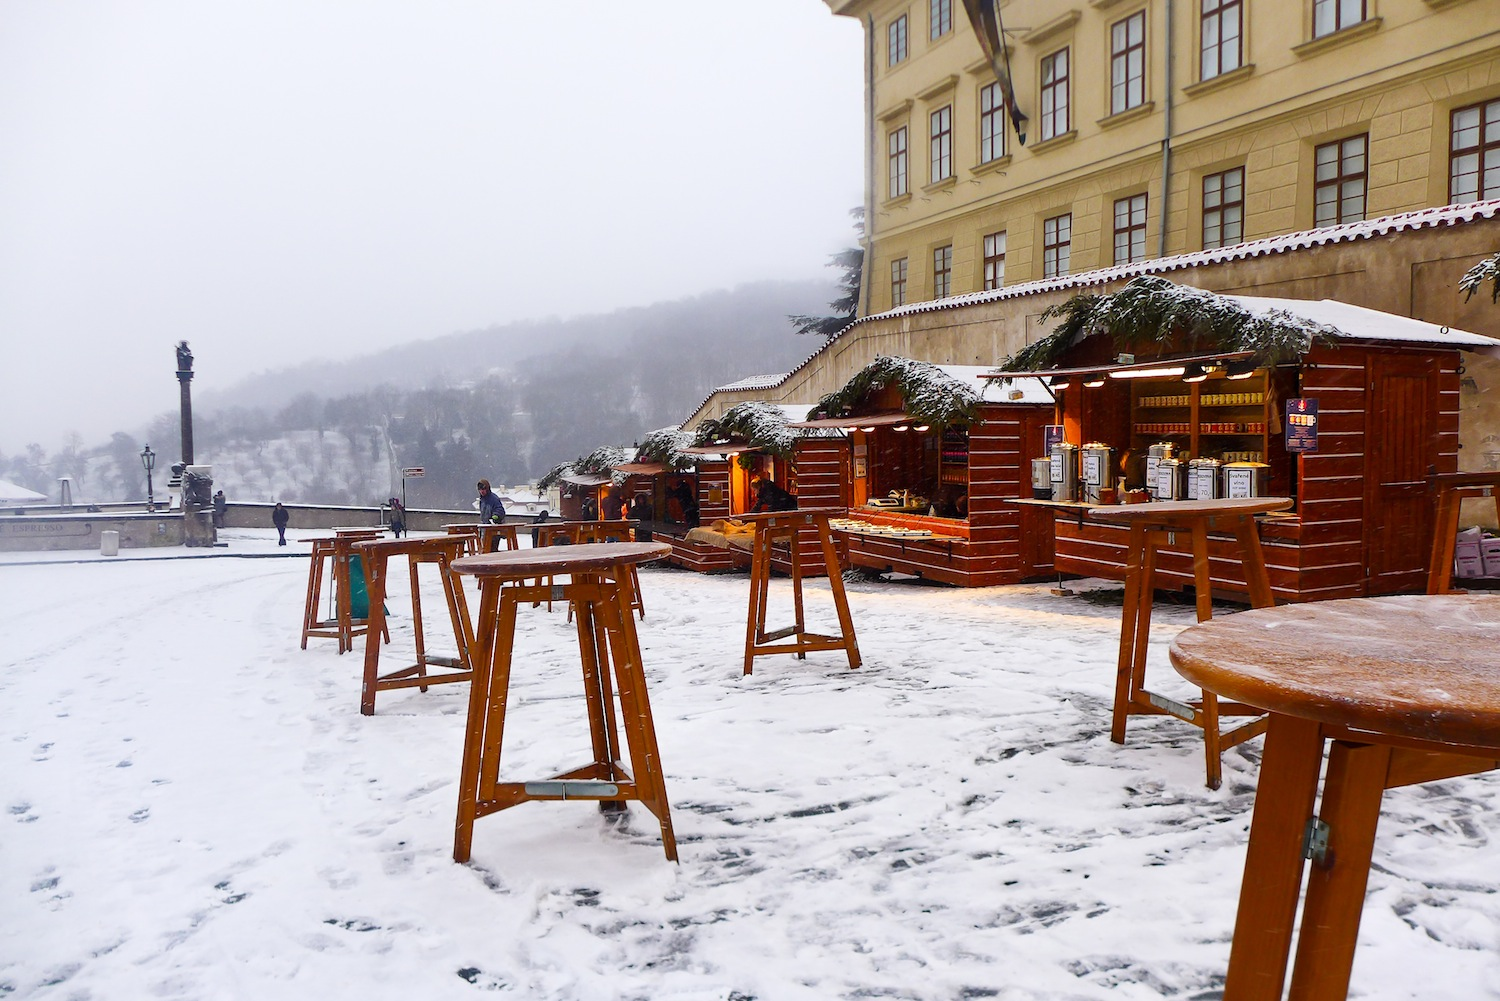 If only it is not too cold for me, I would have ordered something from those lovely wooden stalls and eaten what I bought on one of these tables.